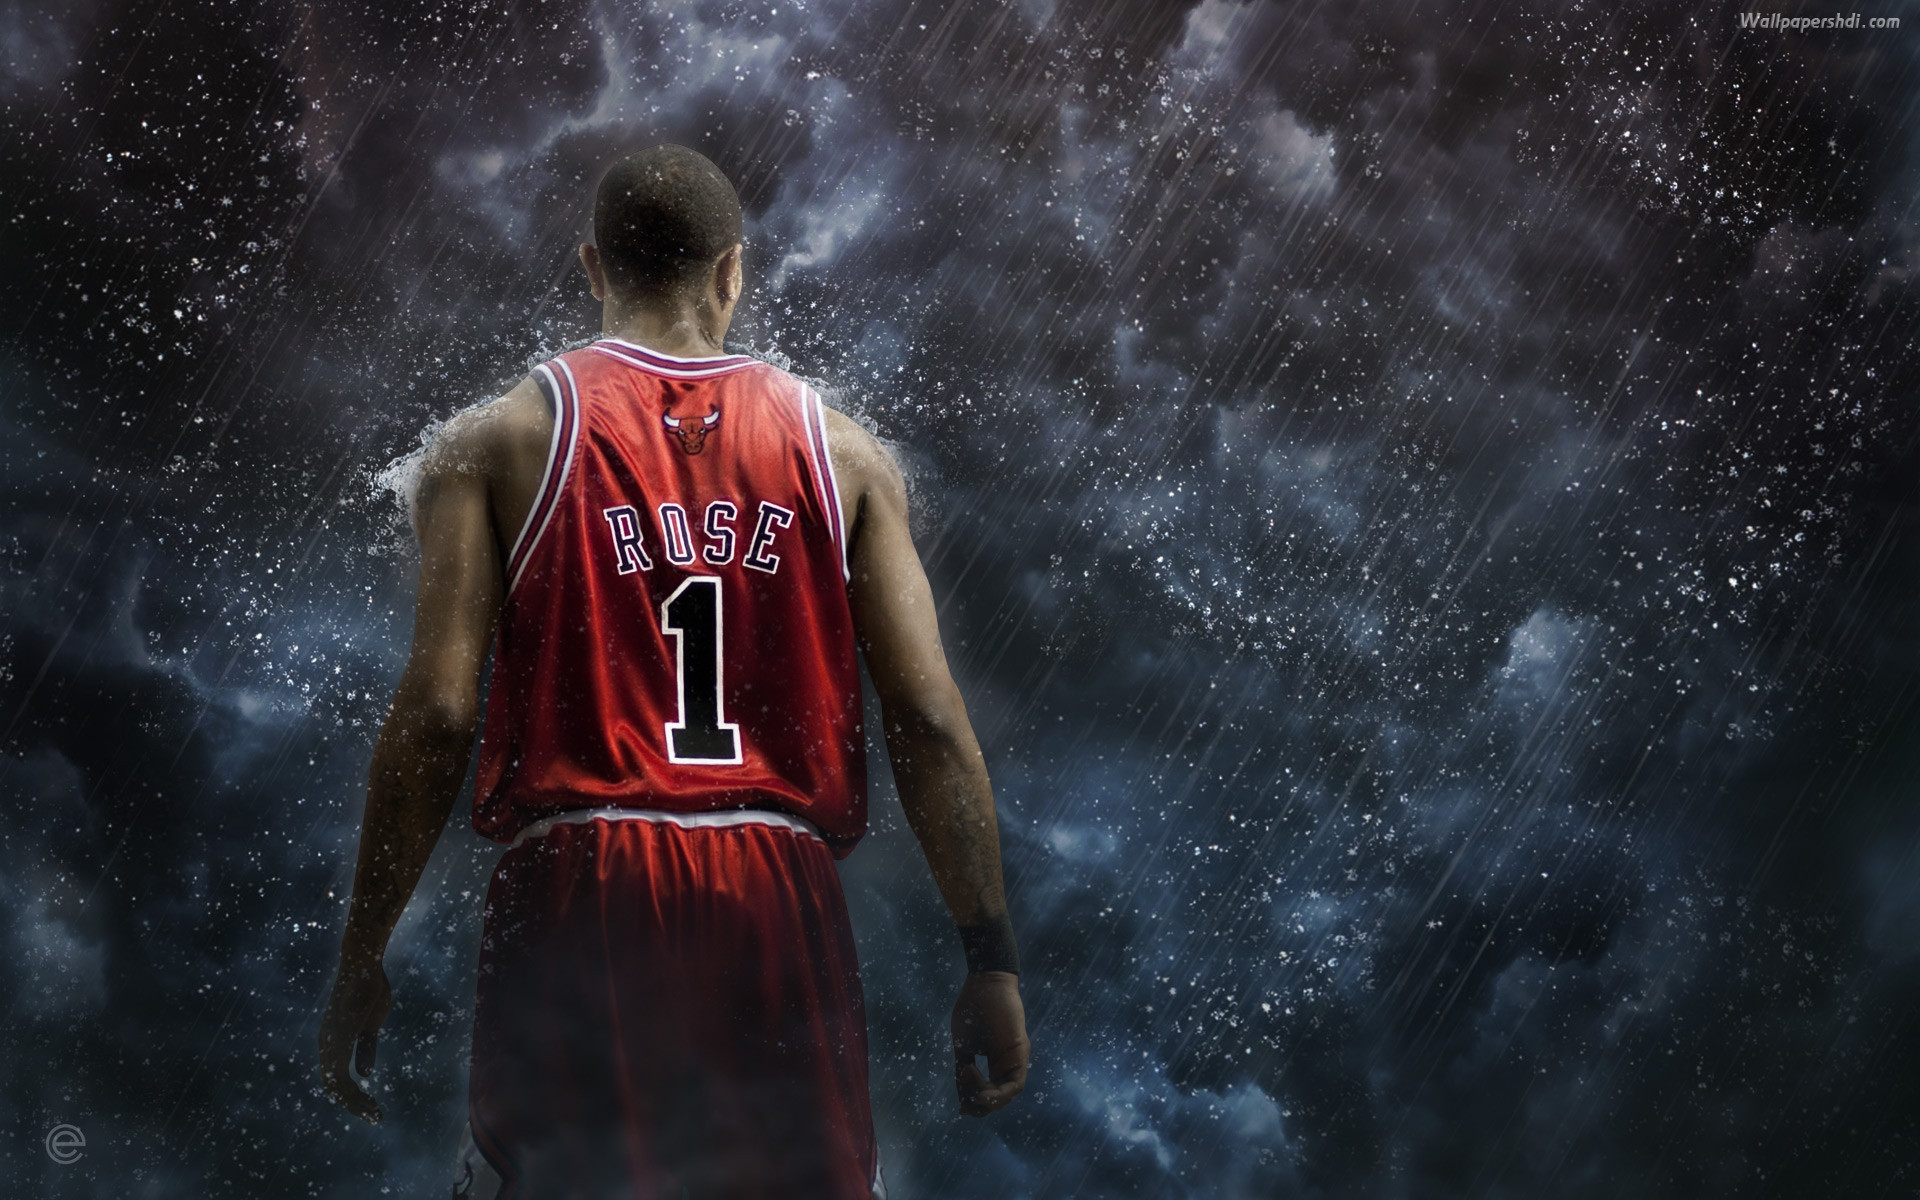 Derrick rose wallpapers high resolution and quality download - Derrick rose wallpaper ...